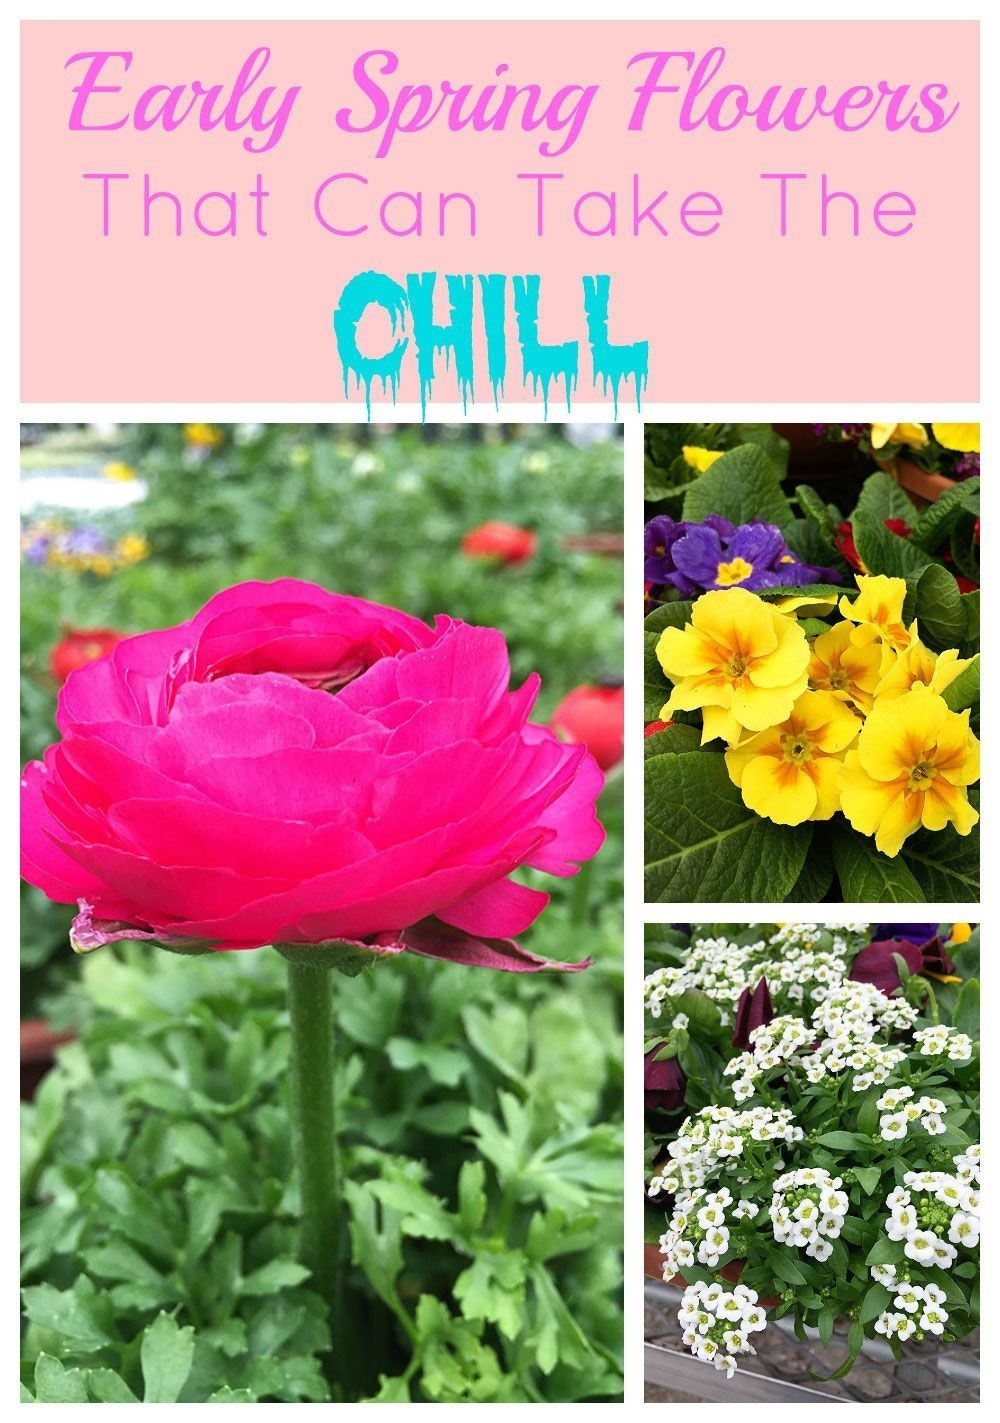 Early Spring Flowers That Can Take The Chill | Gardening Ideas for Garden Flowers To Plant Now